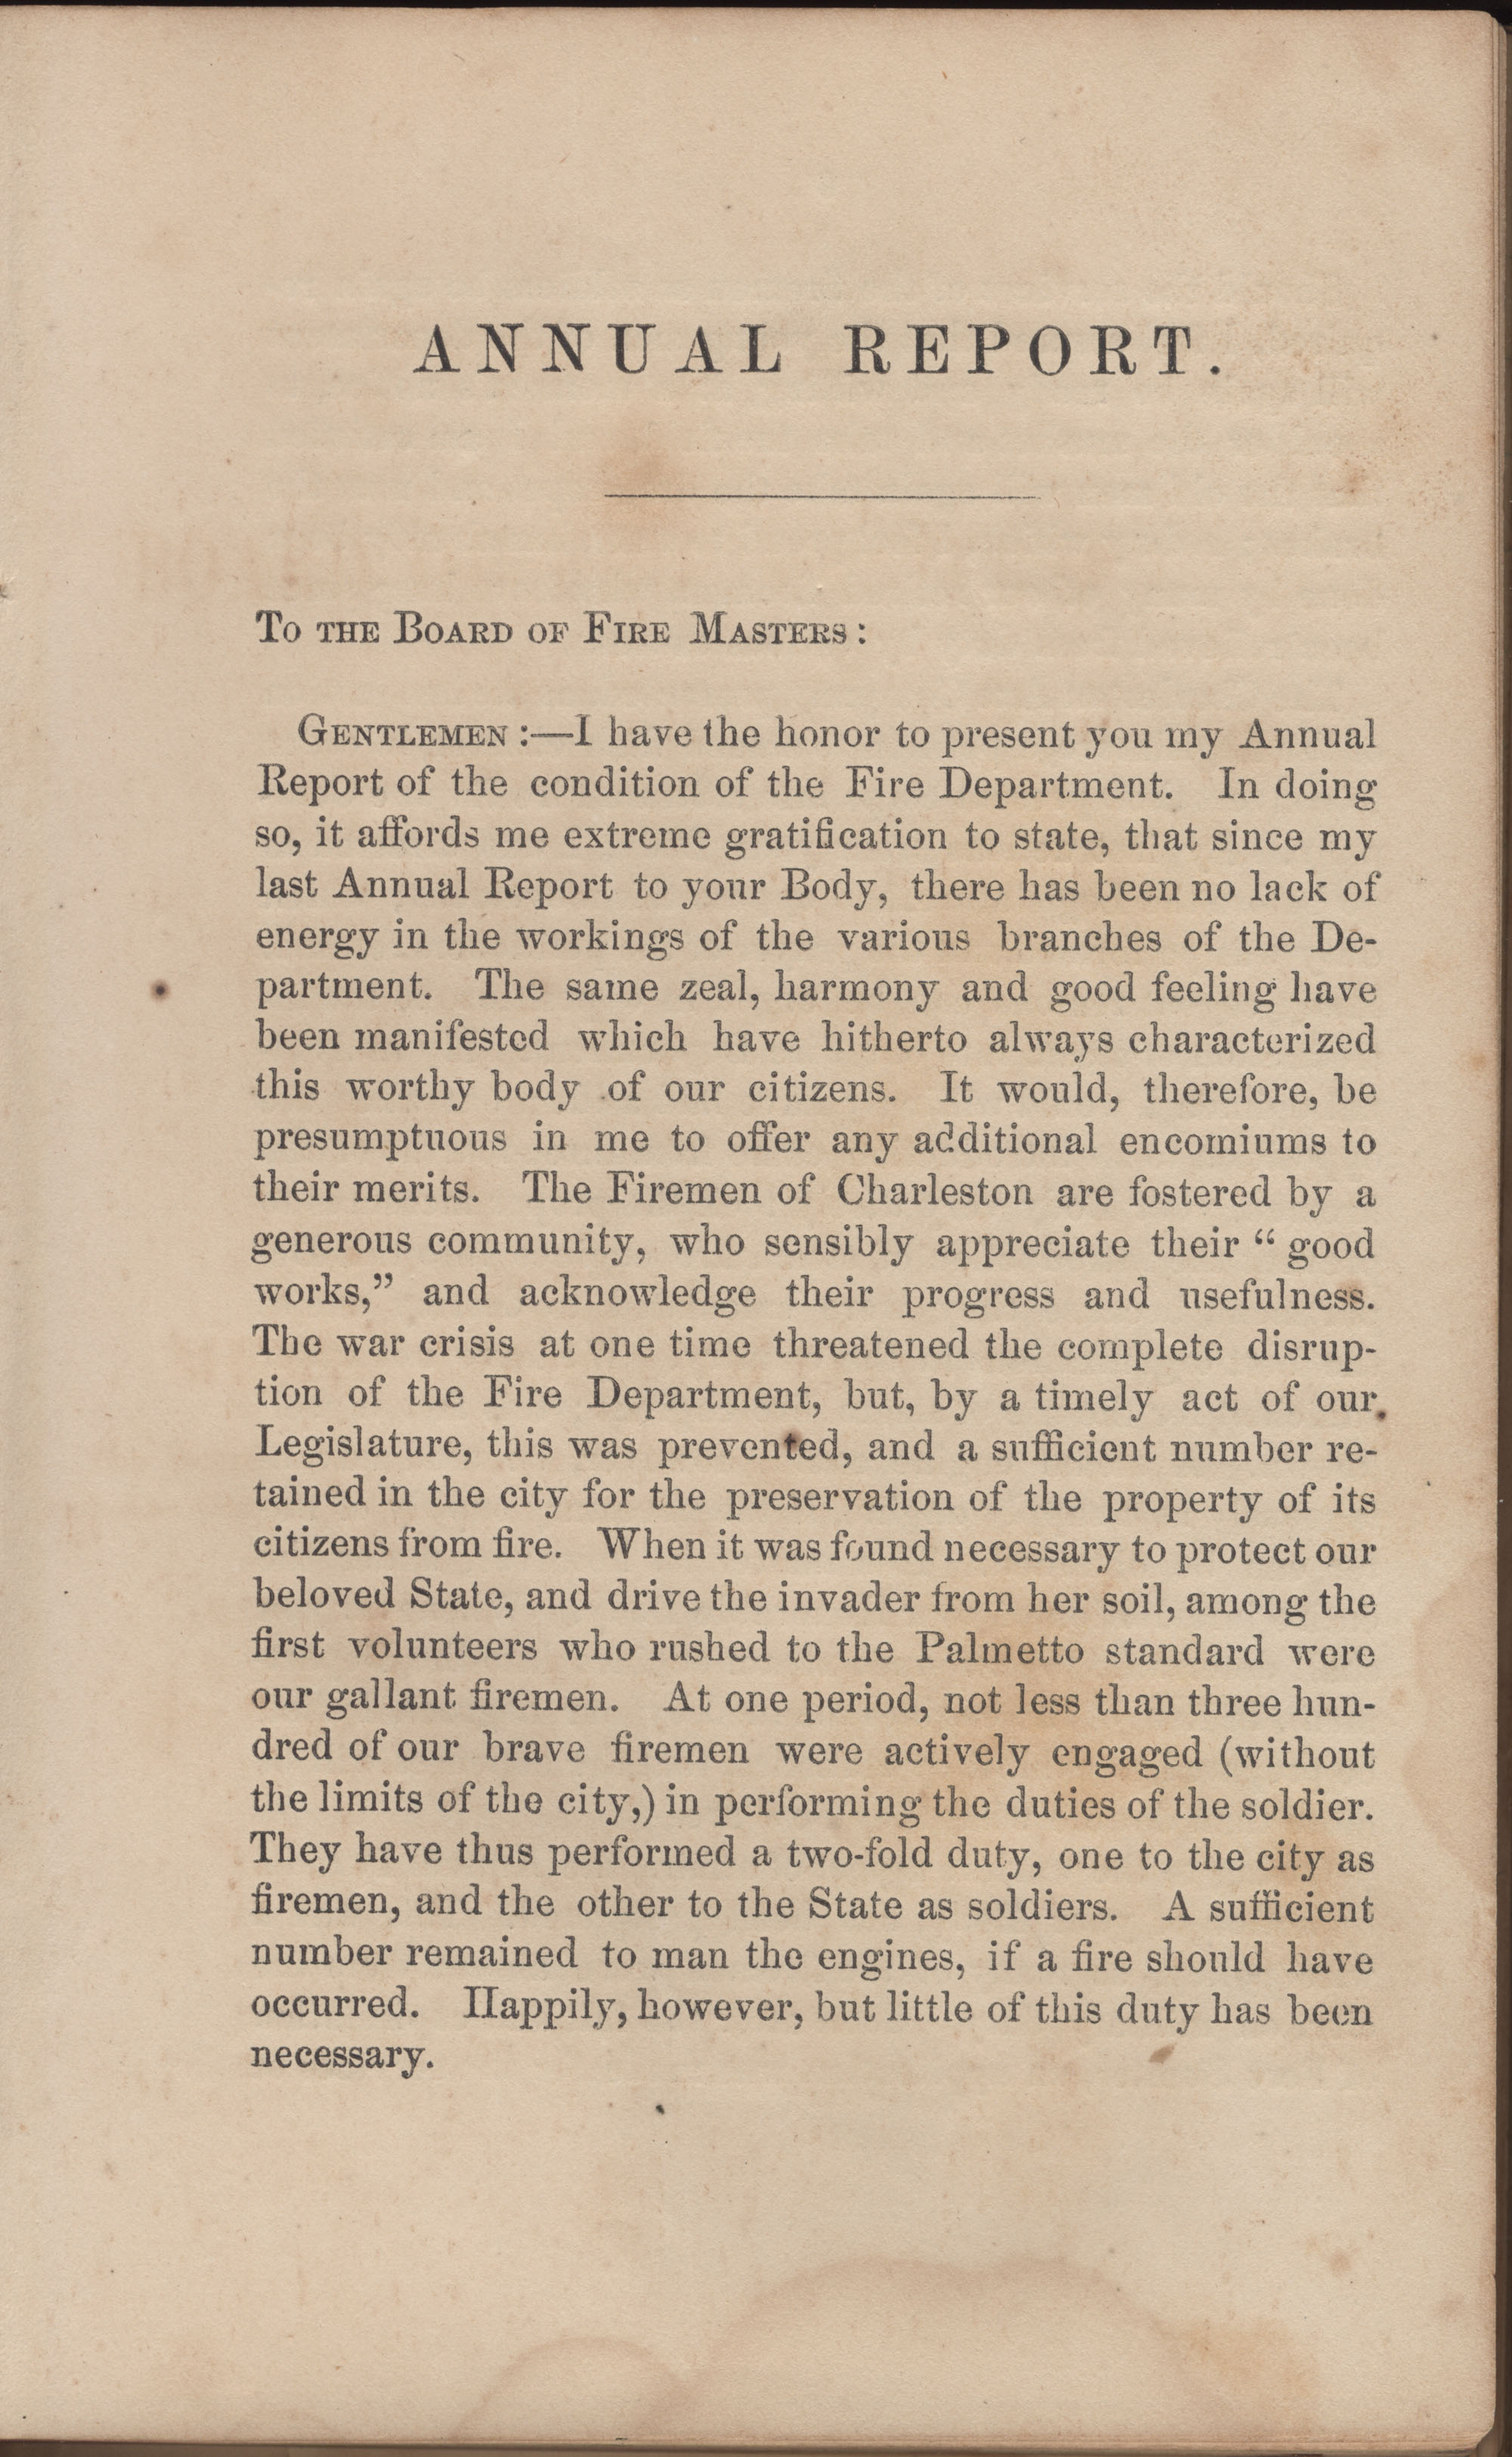 Annual Report of the Chief of the Fire Department of the City of Charleston, page 66